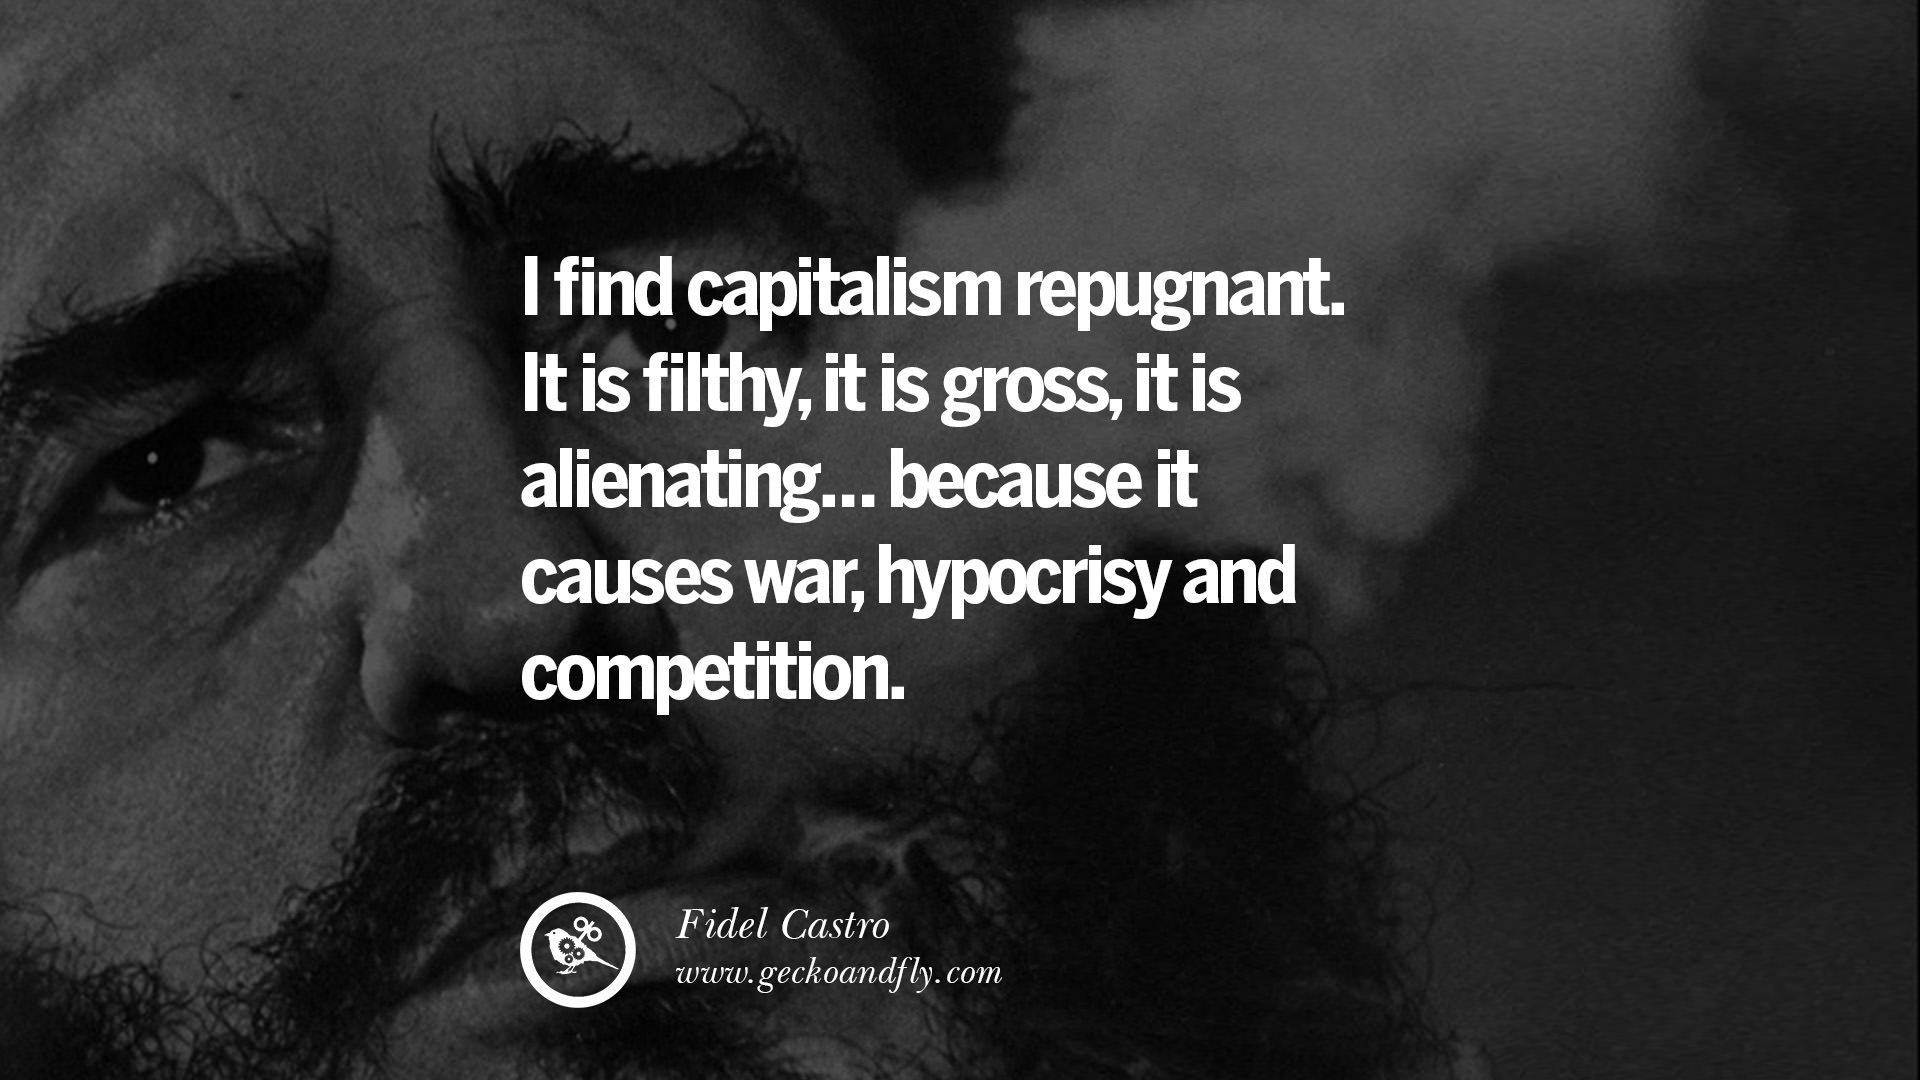 I find capitalism repugnant. It is filthy, it is gross, it is alienating… because it causes war, hypocrisy and competition.